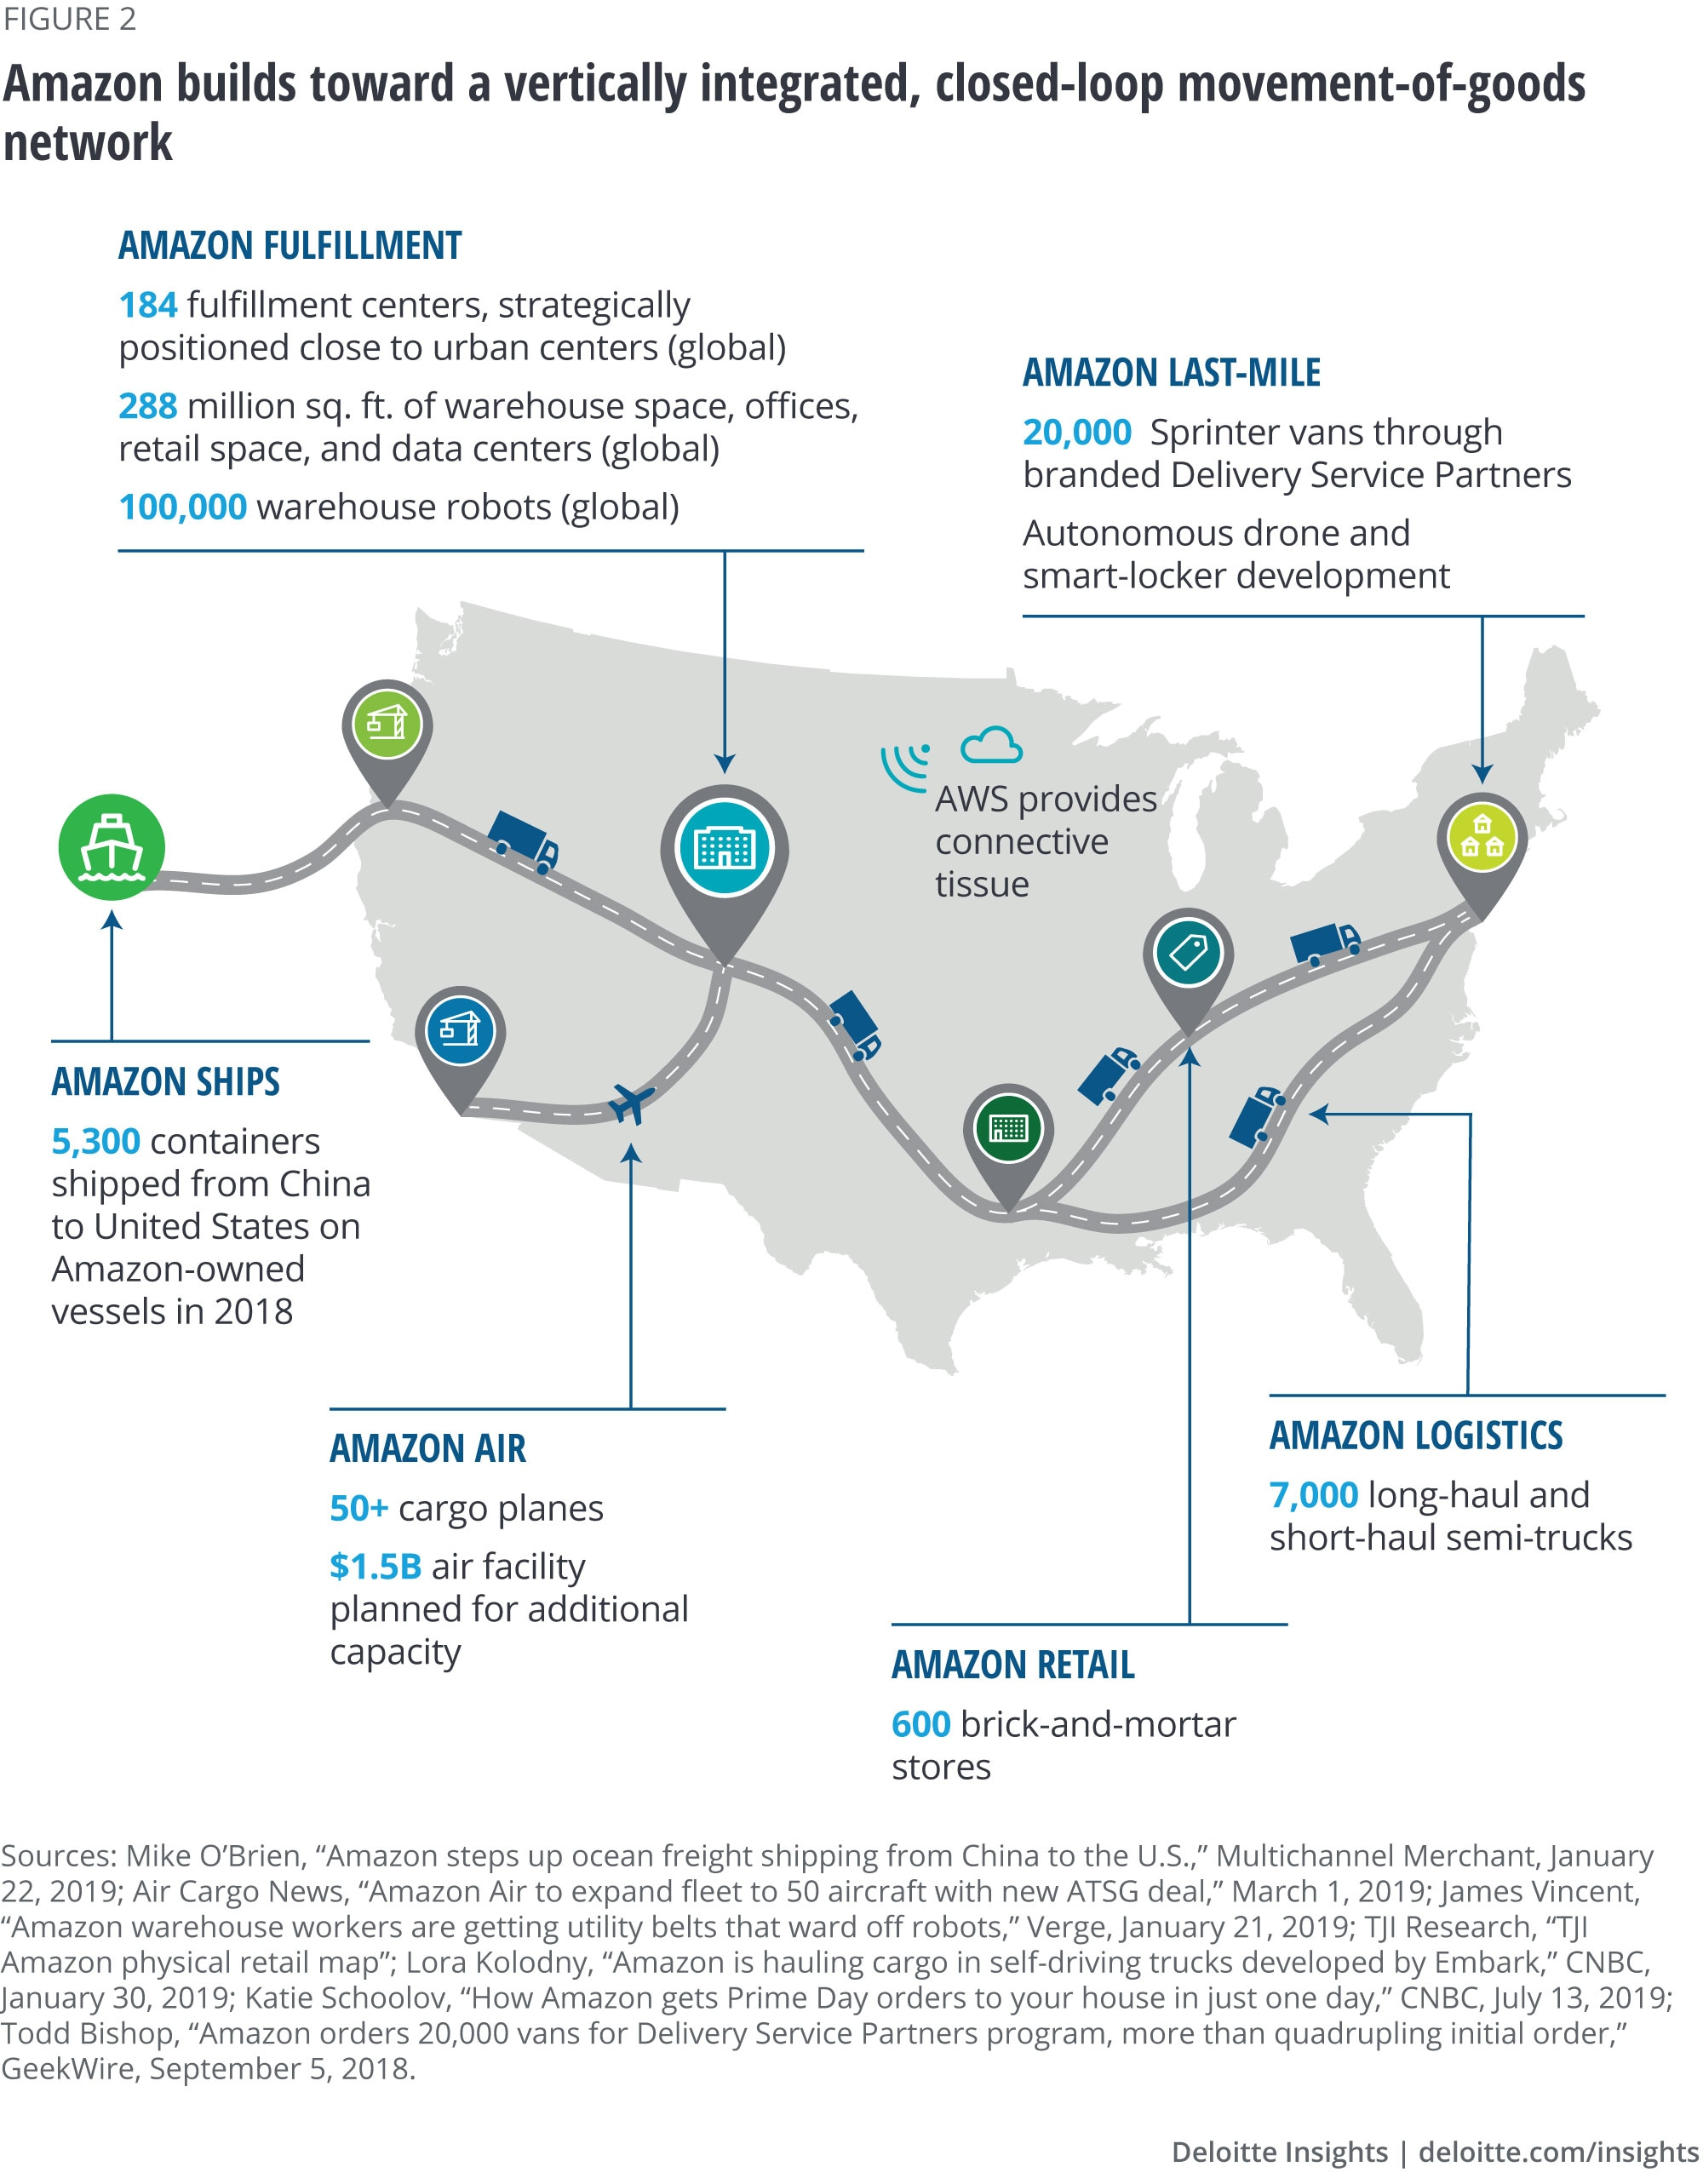 Amazon builds toward a vertically integrated, closed-loop movement-of-goods network